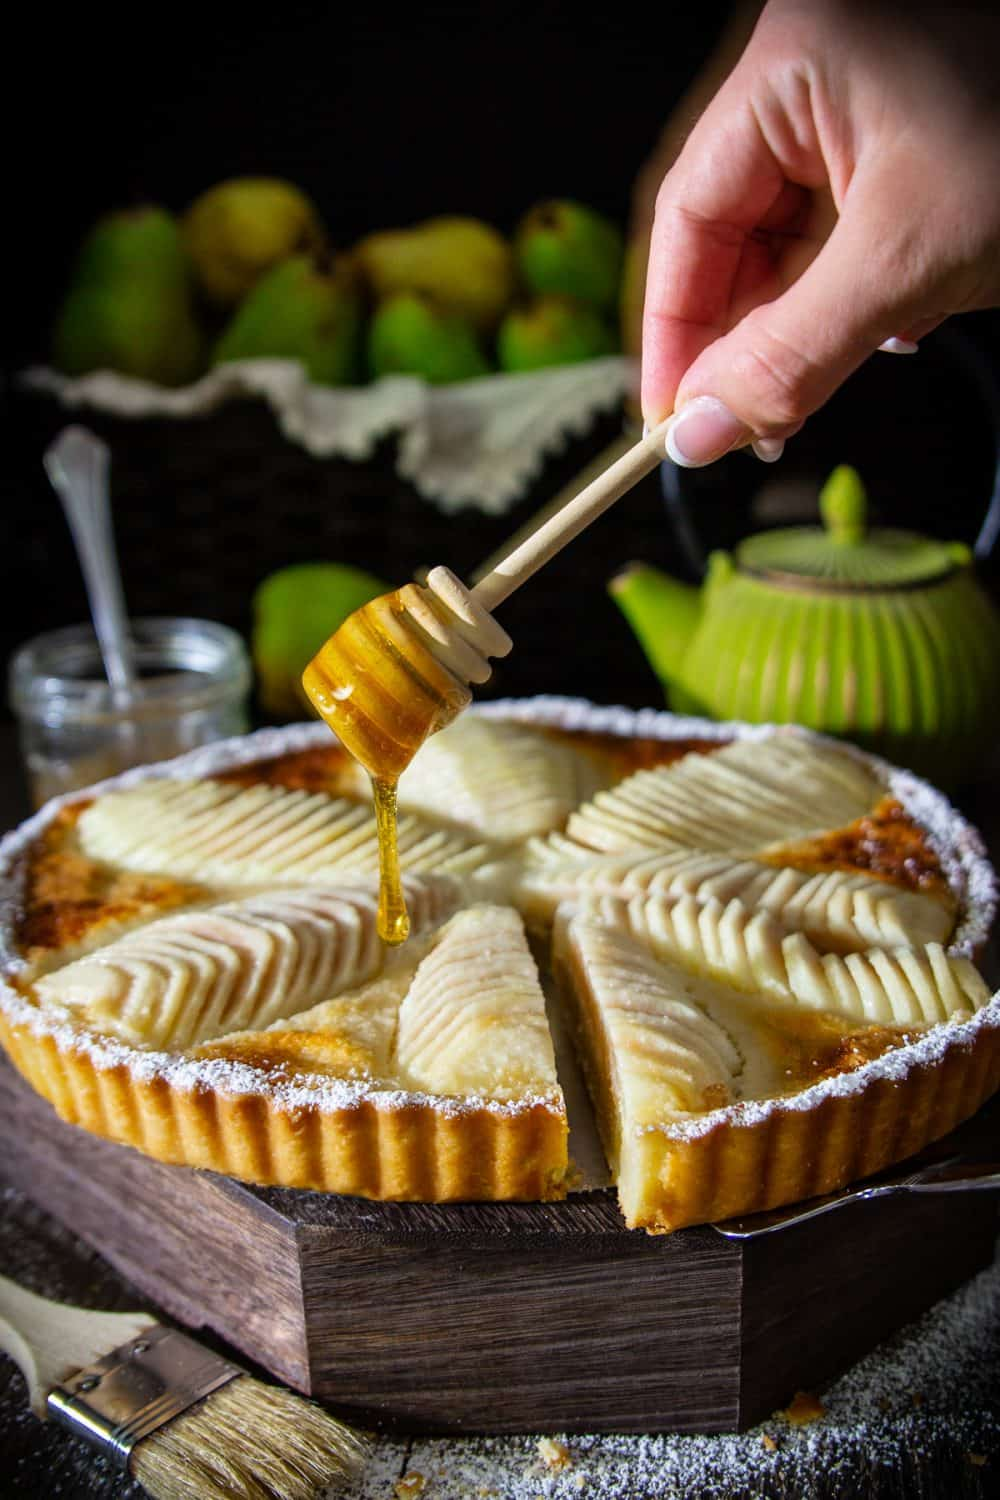 Pear tart sitting on a wooden surface with a hand shown drizzling fresh honey over the top of the tart and a green teapot and display of fresh pears in the background